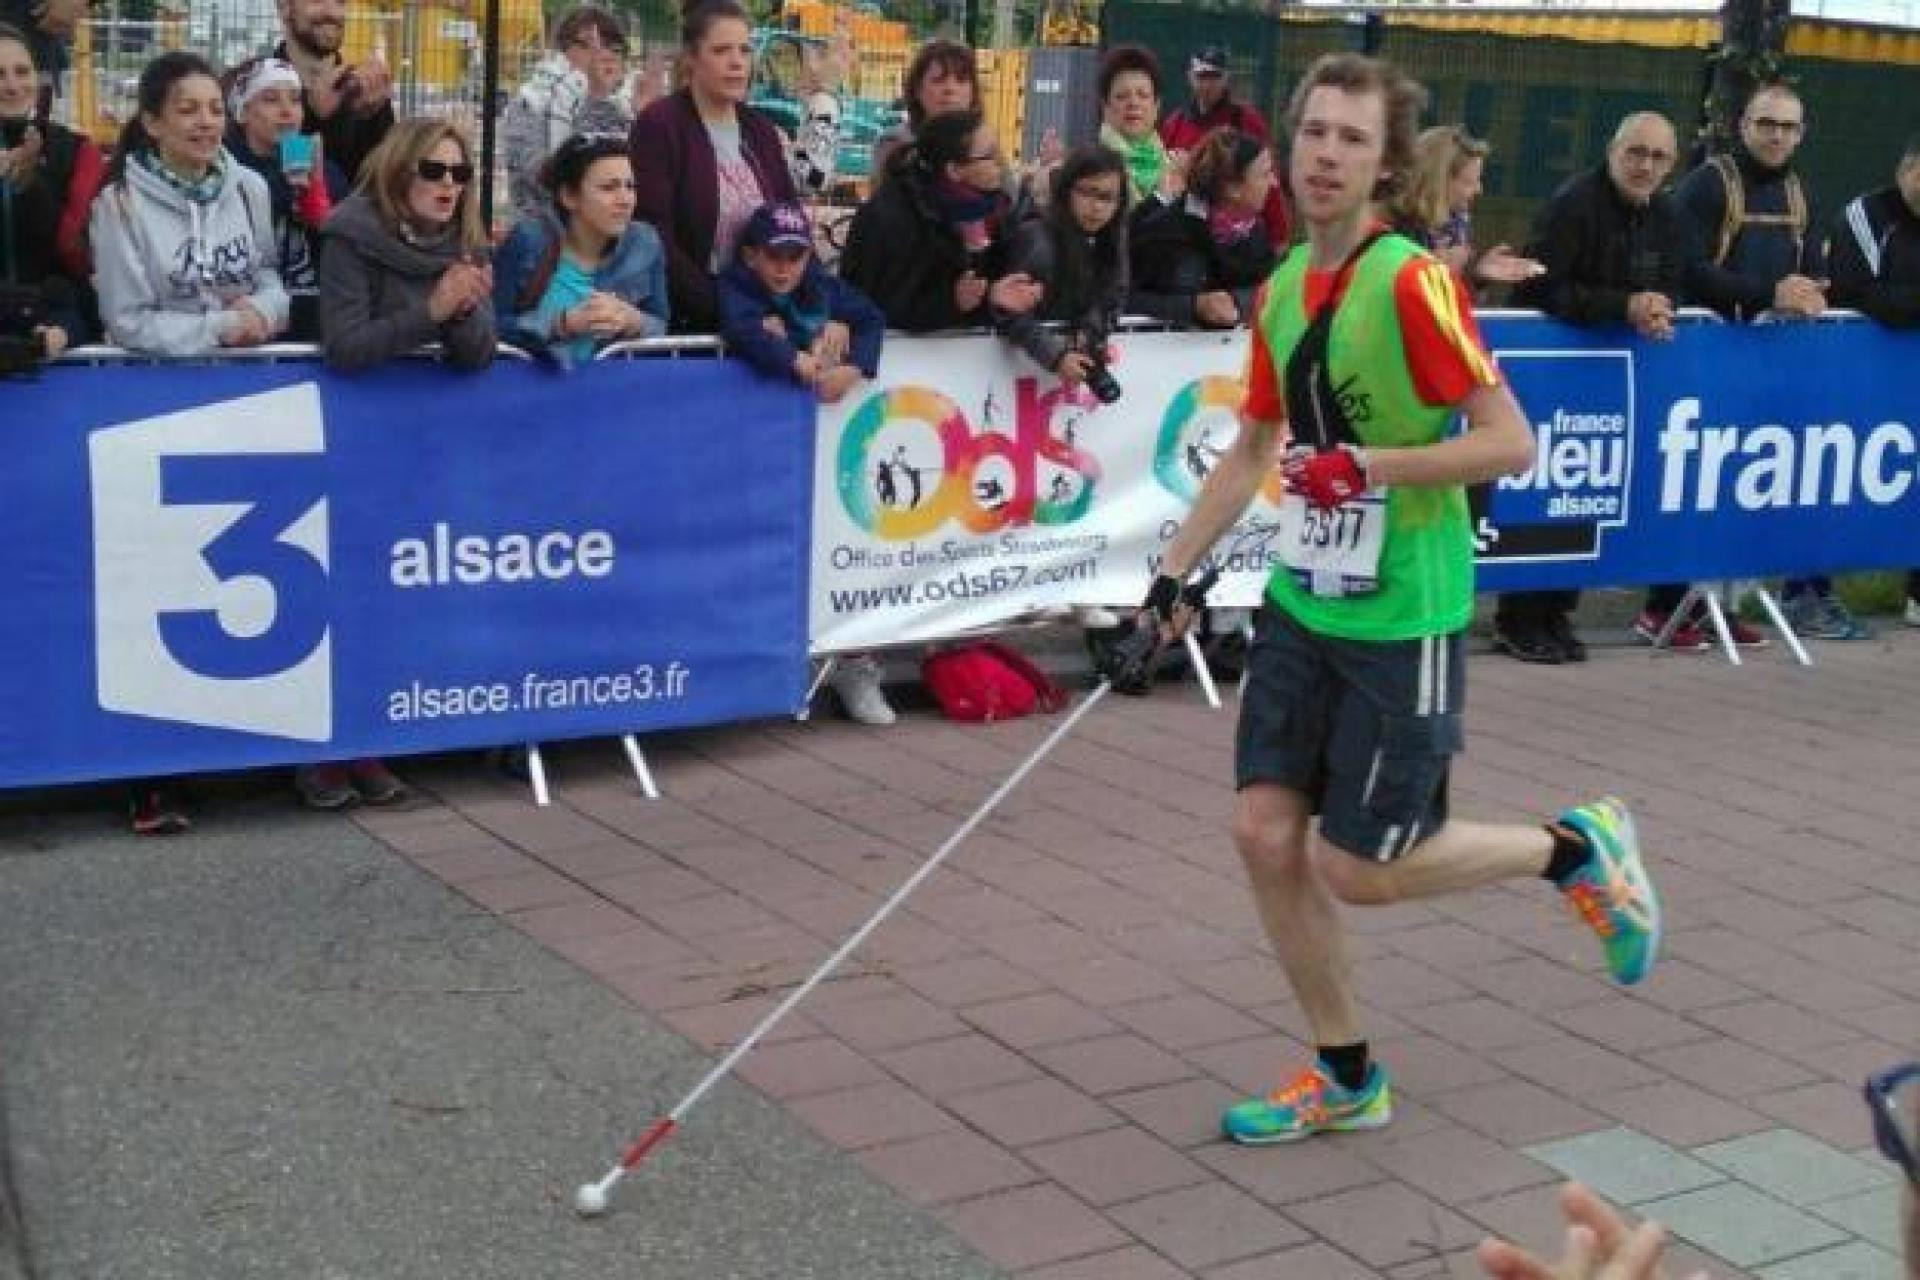 Road marathon world record by a blind person in complete autonomy, provided with a GPS application on smartphone, or similar device.